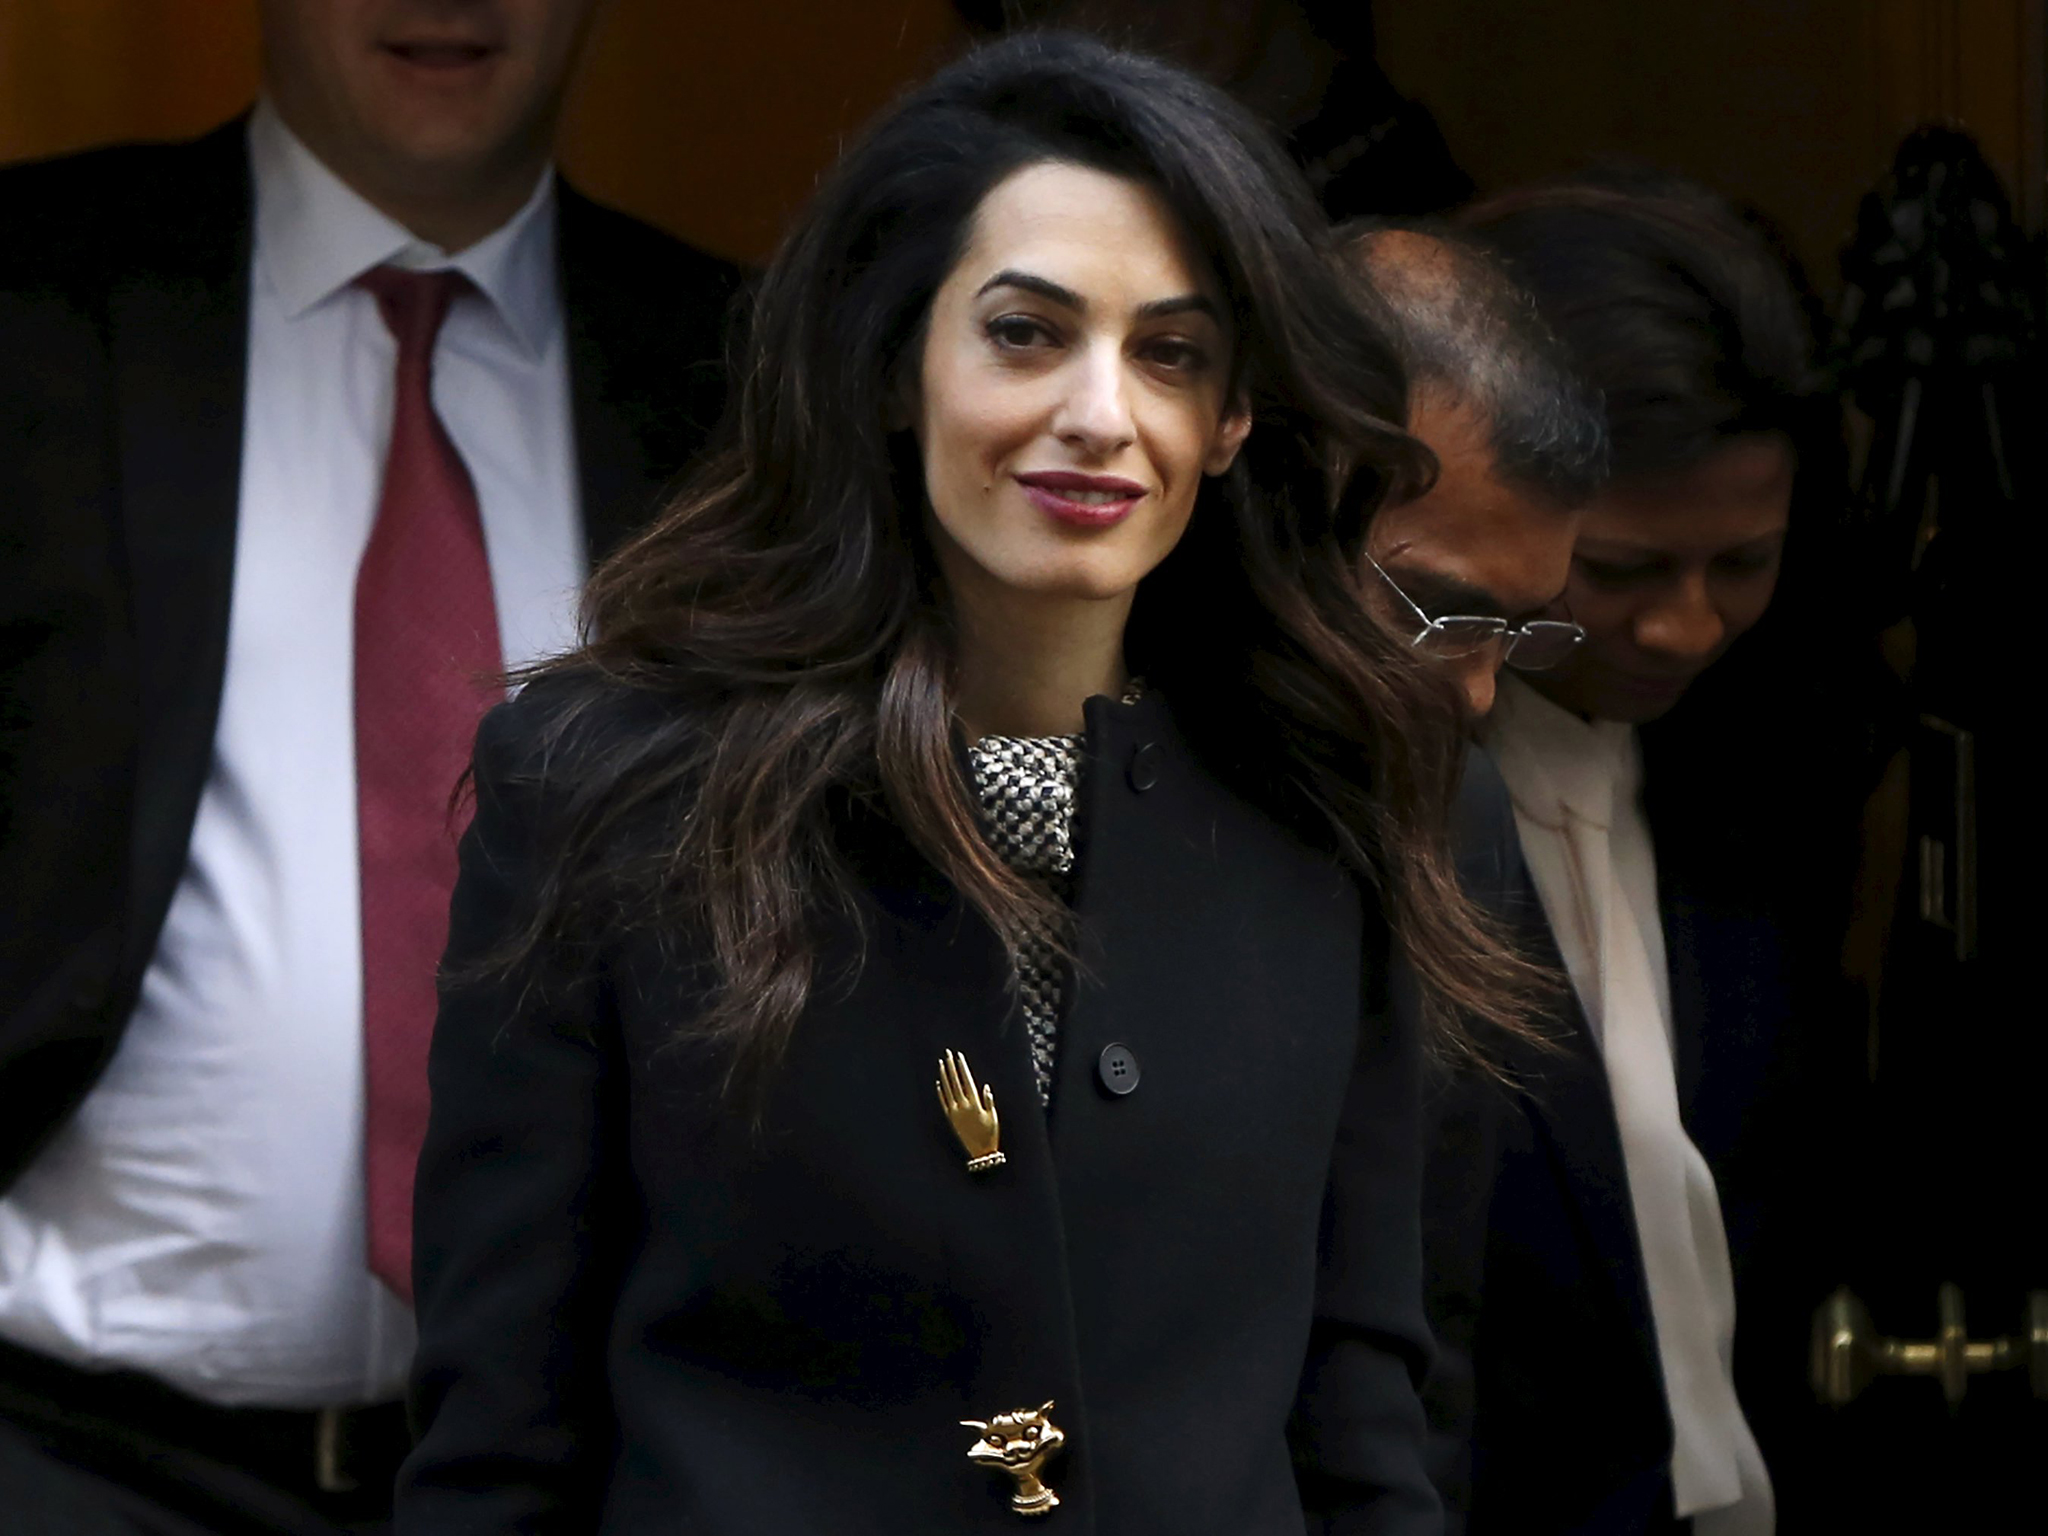 2048x1536 - Amal Clooney Wallpapers 21